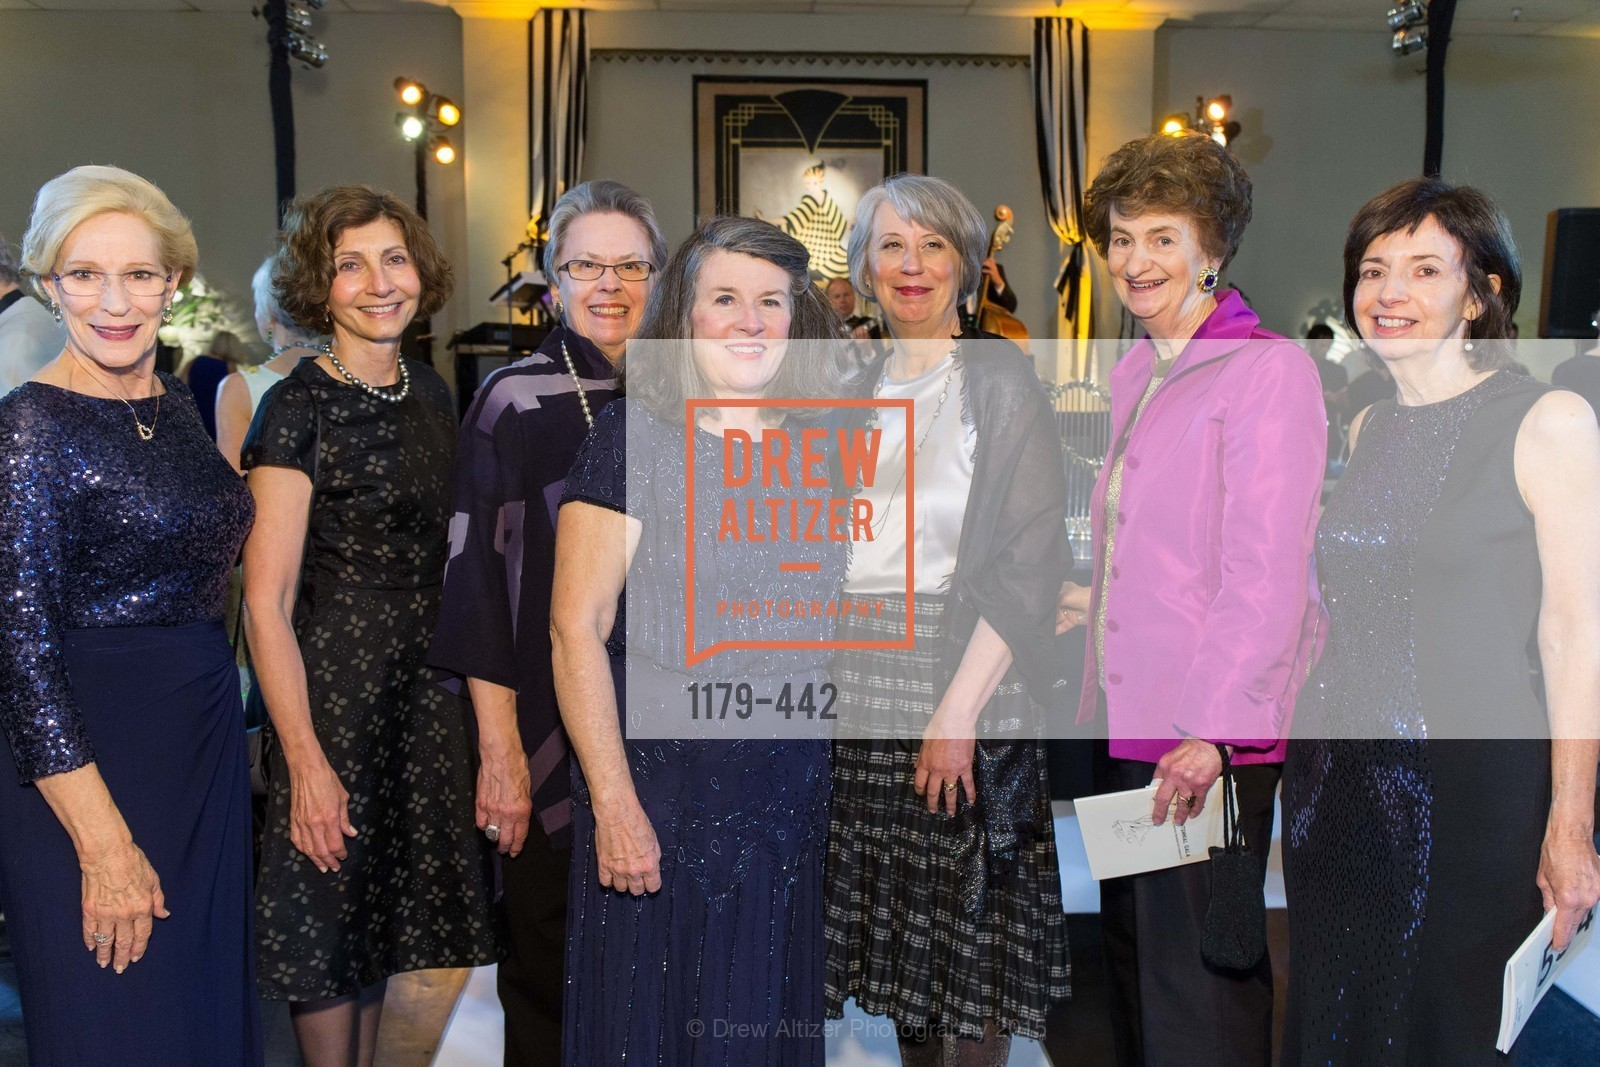 Misty Tyree, Karen Rose, Molly Brant, Peggy Mitchell, Barbara Kimport, Margaret Handelman, Maria Hilakos Hanke, Metropolitan Club Presents THE CENTENNIAL GALA, Metropolitan Club. 640 Sutter Street, November 5th, 2015,Drew Altizer, Drew Altizer Photography, full-service agency, private events, San Francisco photographer, photographer california